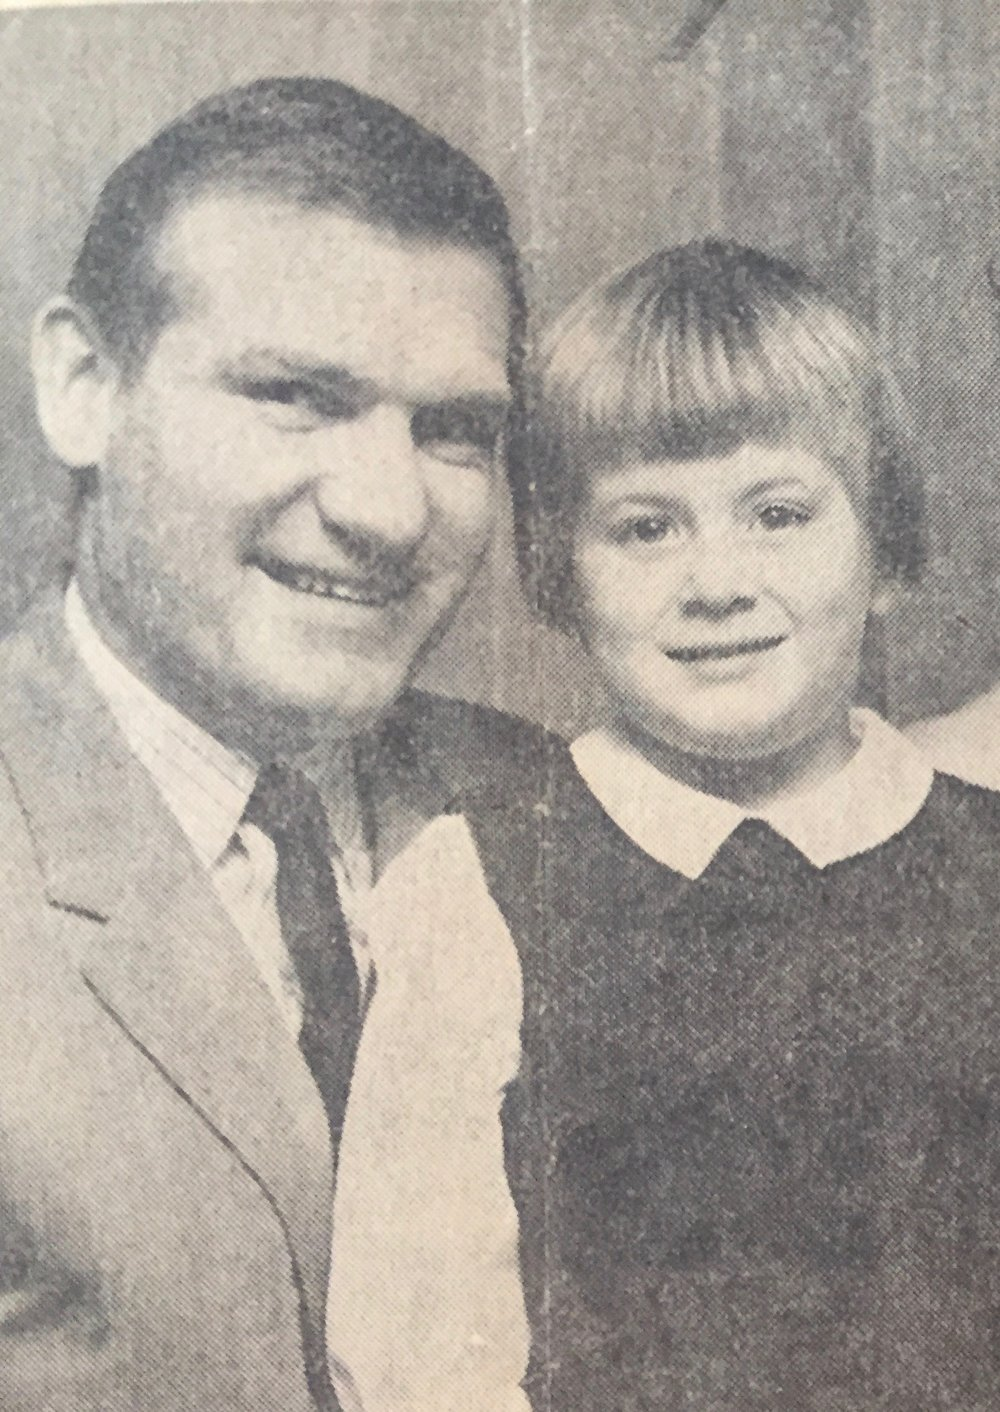 Dad and I in the newspaper, circa 1968, the apparent era of bowl shaped haircuts.